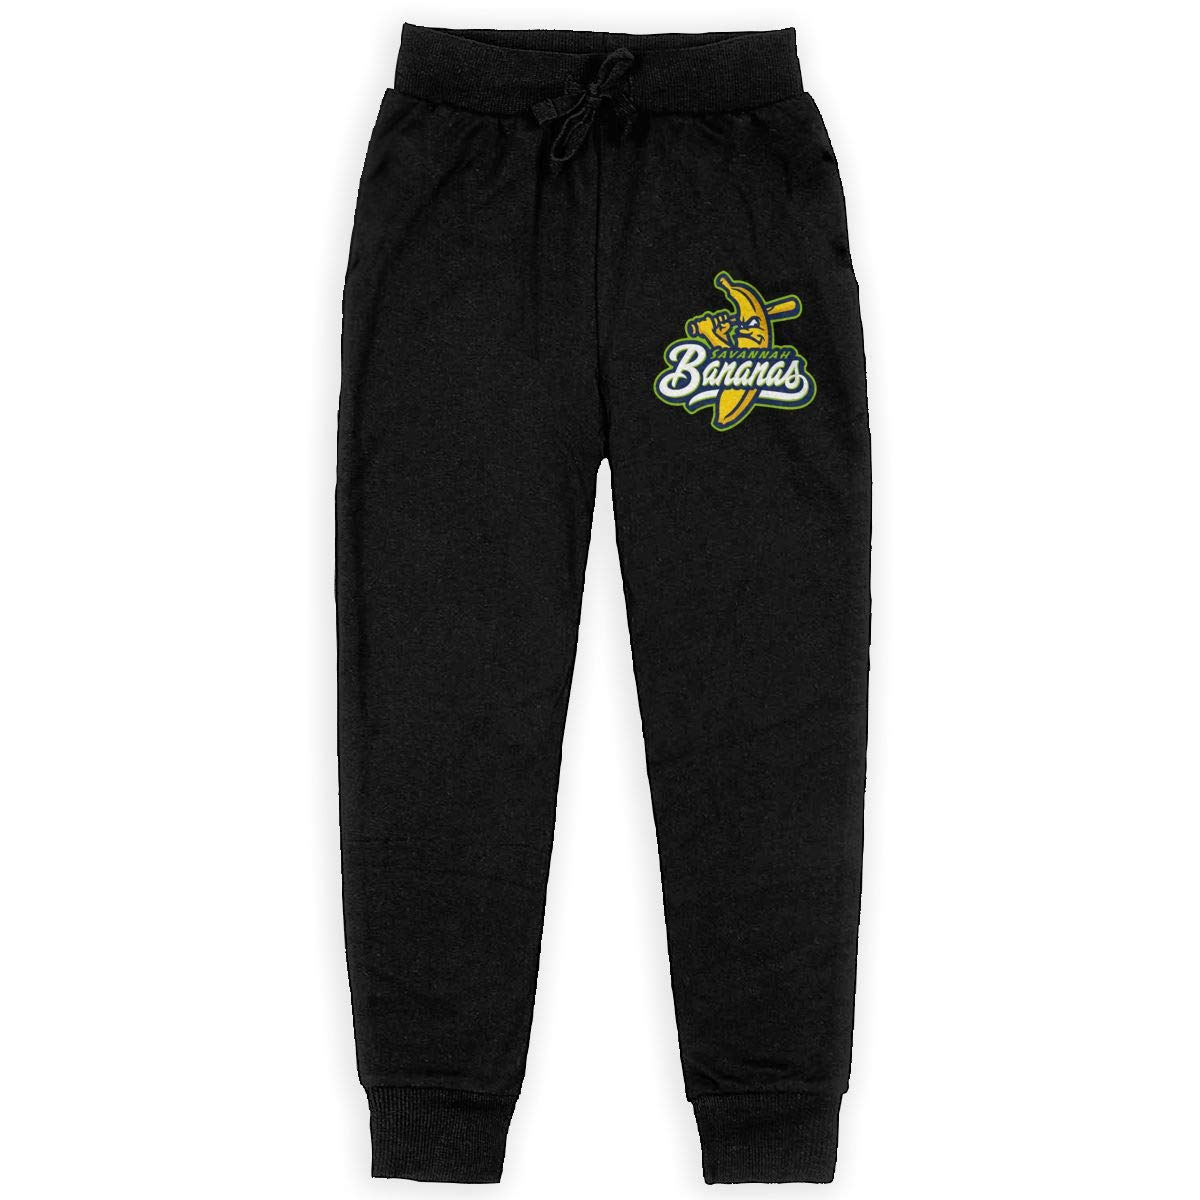 Dunpaiaa Savannah Bananas Boys Sweatpants,Joggers Sport Training Pants Trousers Black